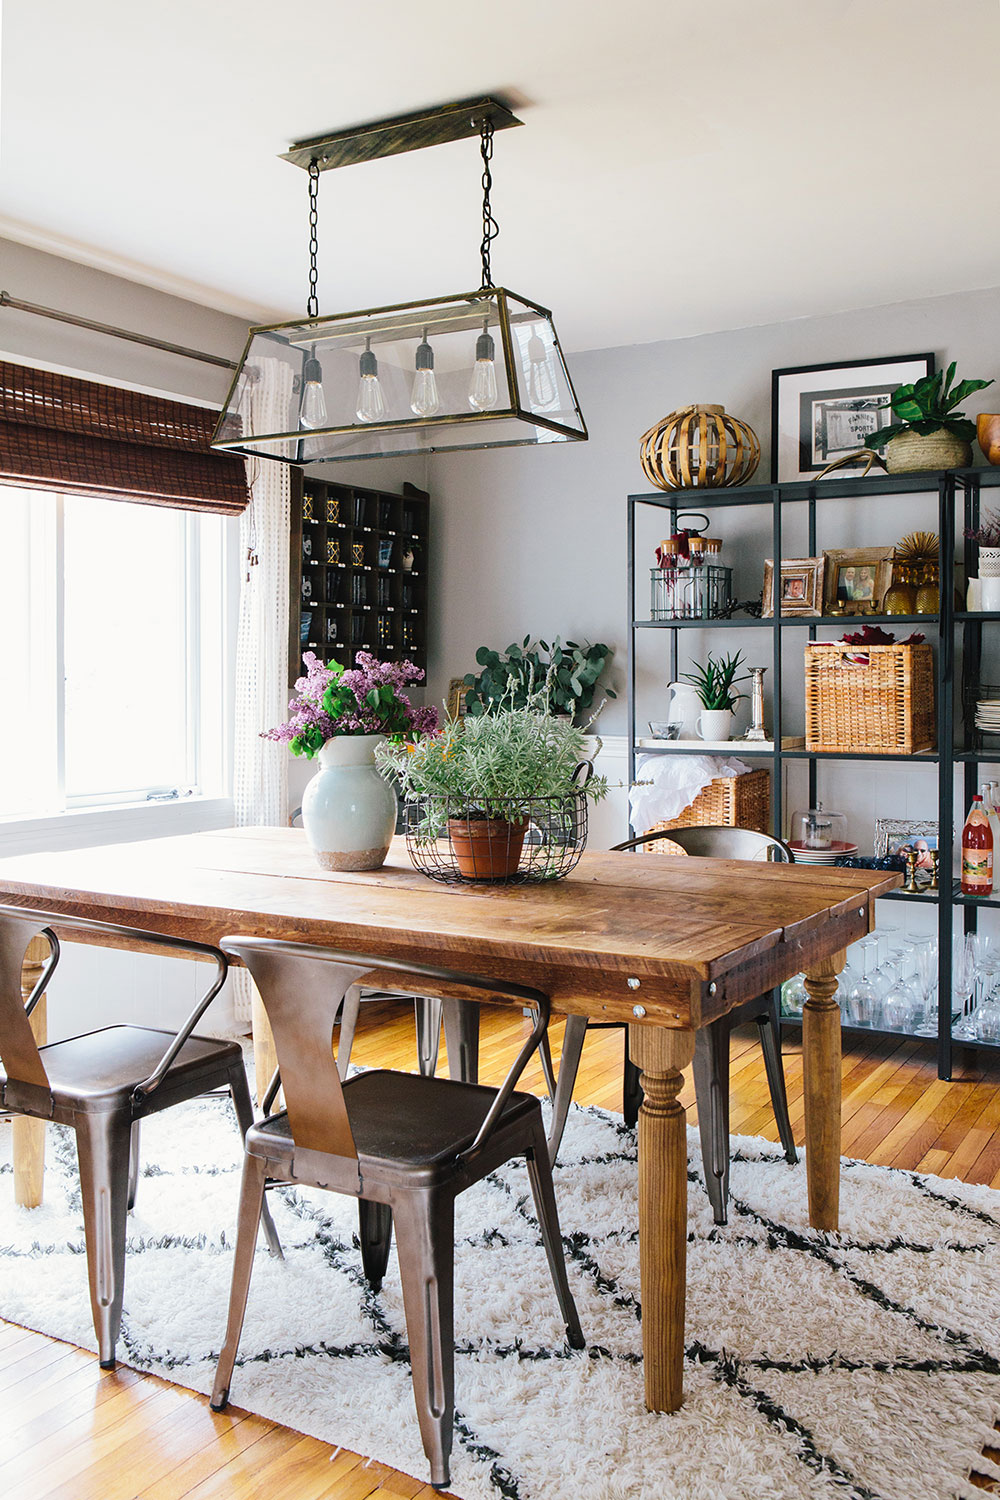 #farmhousedialfano dining room / circa early 2015 on design*sponge / photo by  joyelle west